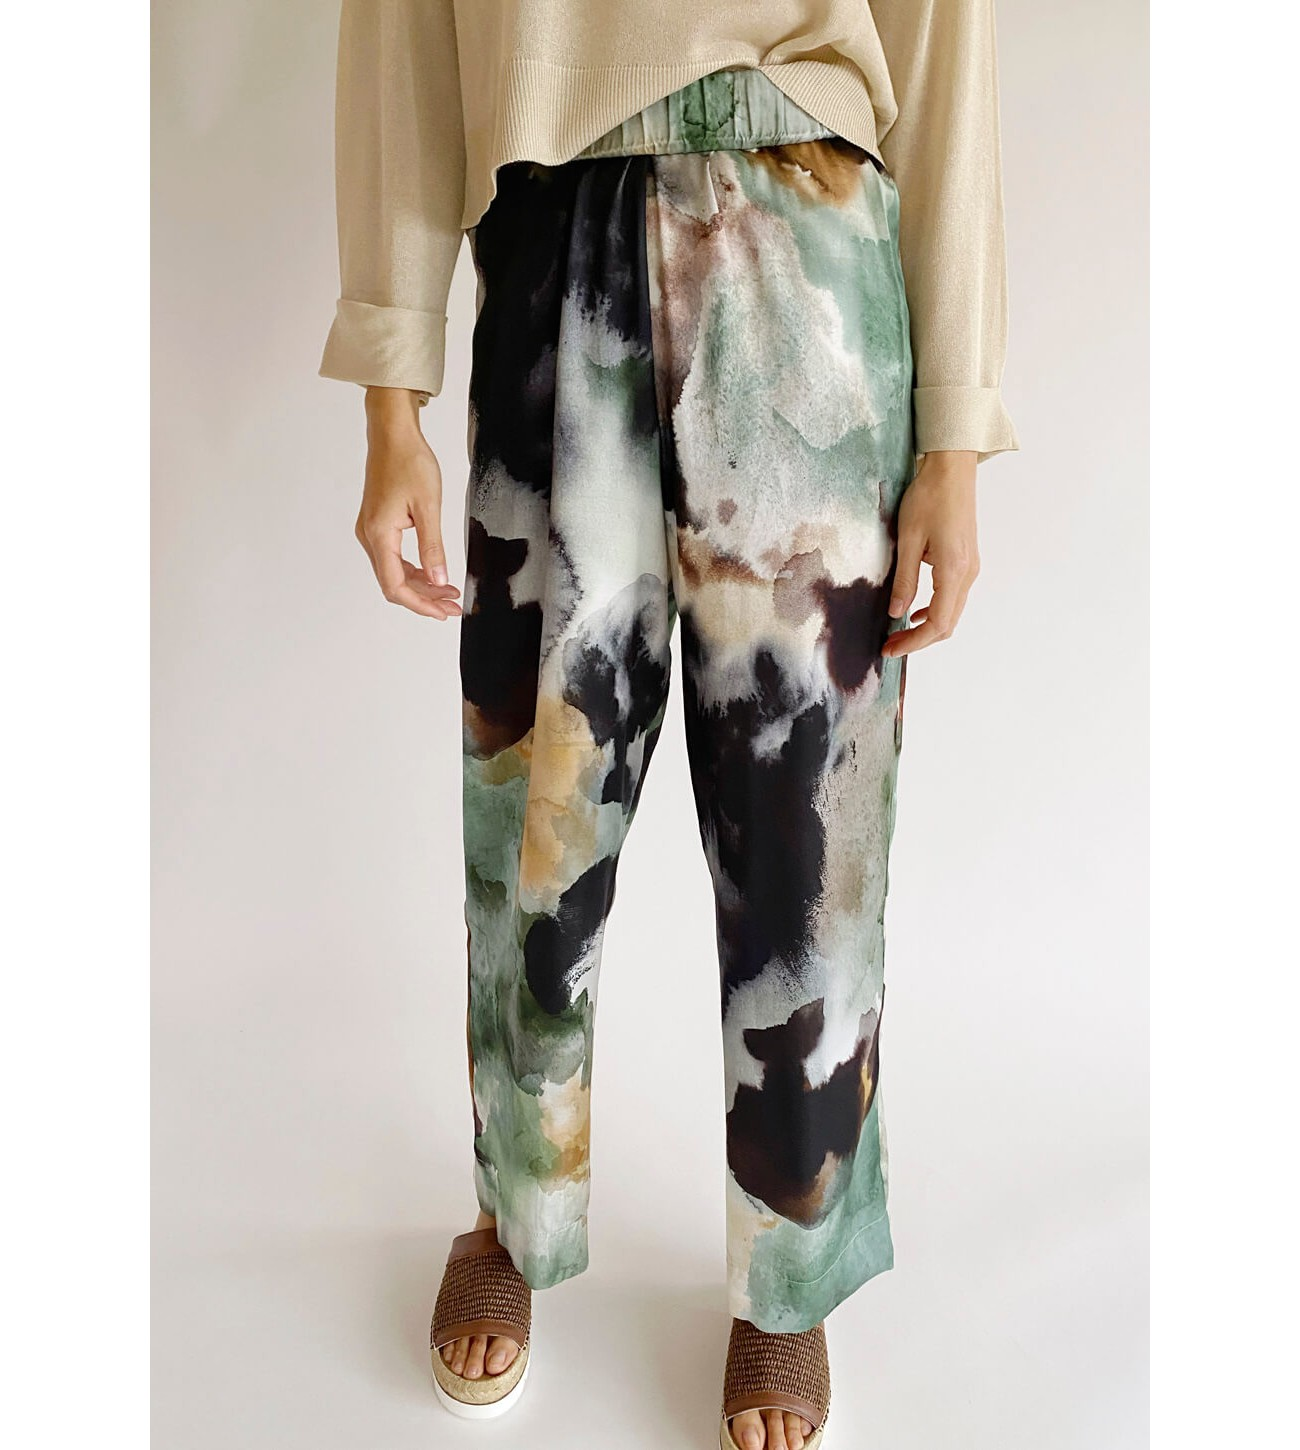 ALPHA_WIDE_LEG_PRINTED_TROUSERS_MARIONA_FASHION_CLOTHING_WOMAN_SHOP_ONLINE_AD-5602Q